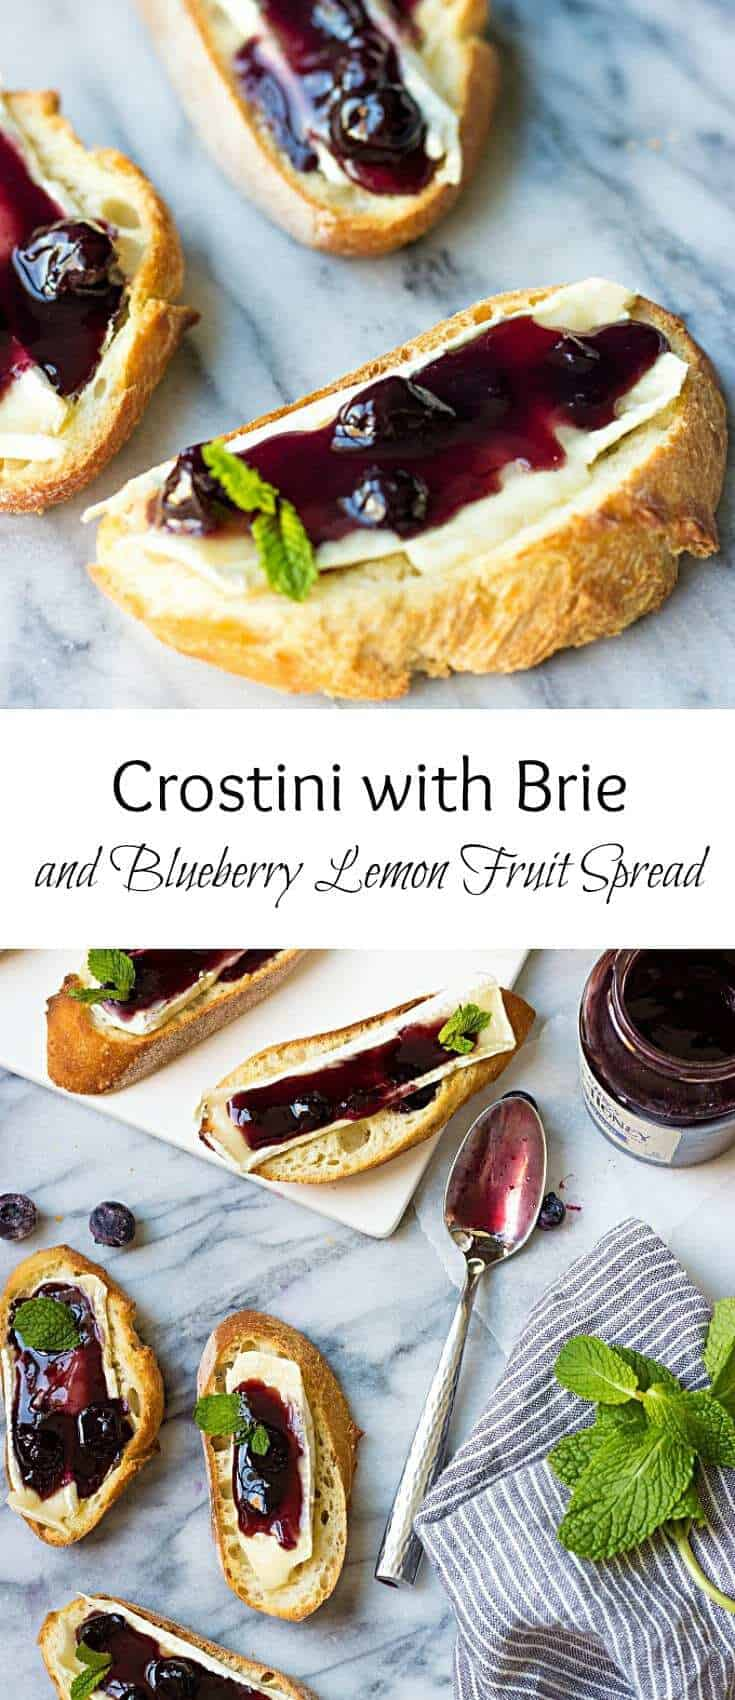 Delicious holiday appetizer made in under 10 minutes. These Crostini with Brie and Blueberry Lemon Fruit Spread are excellent party-starters.